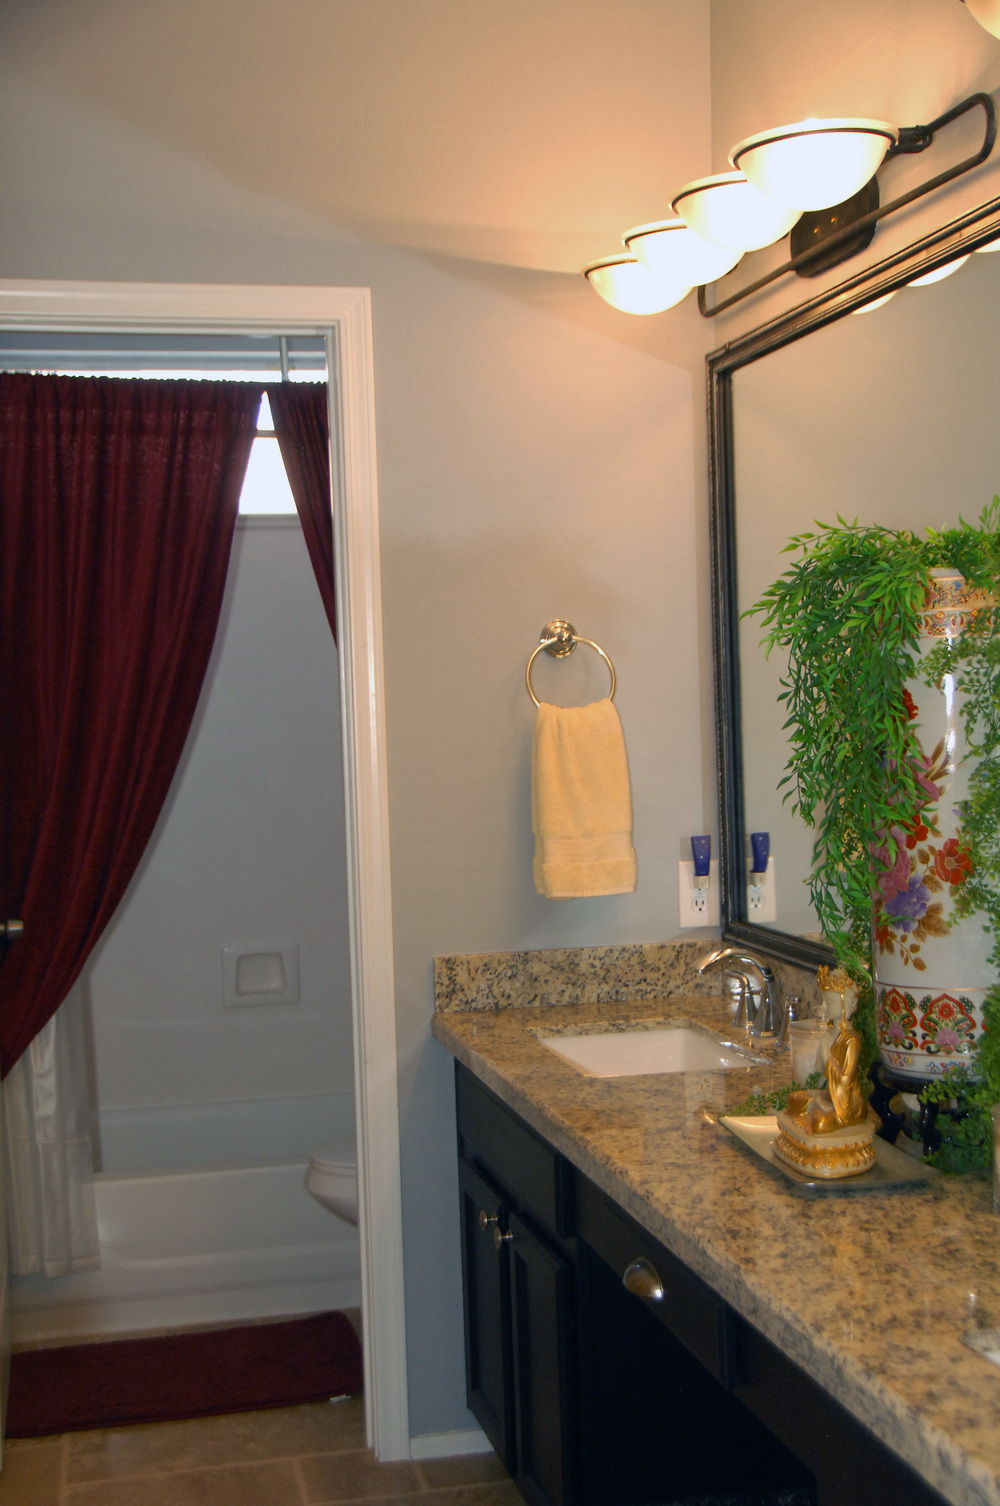 Bathroom number 2 photo 1.JPG